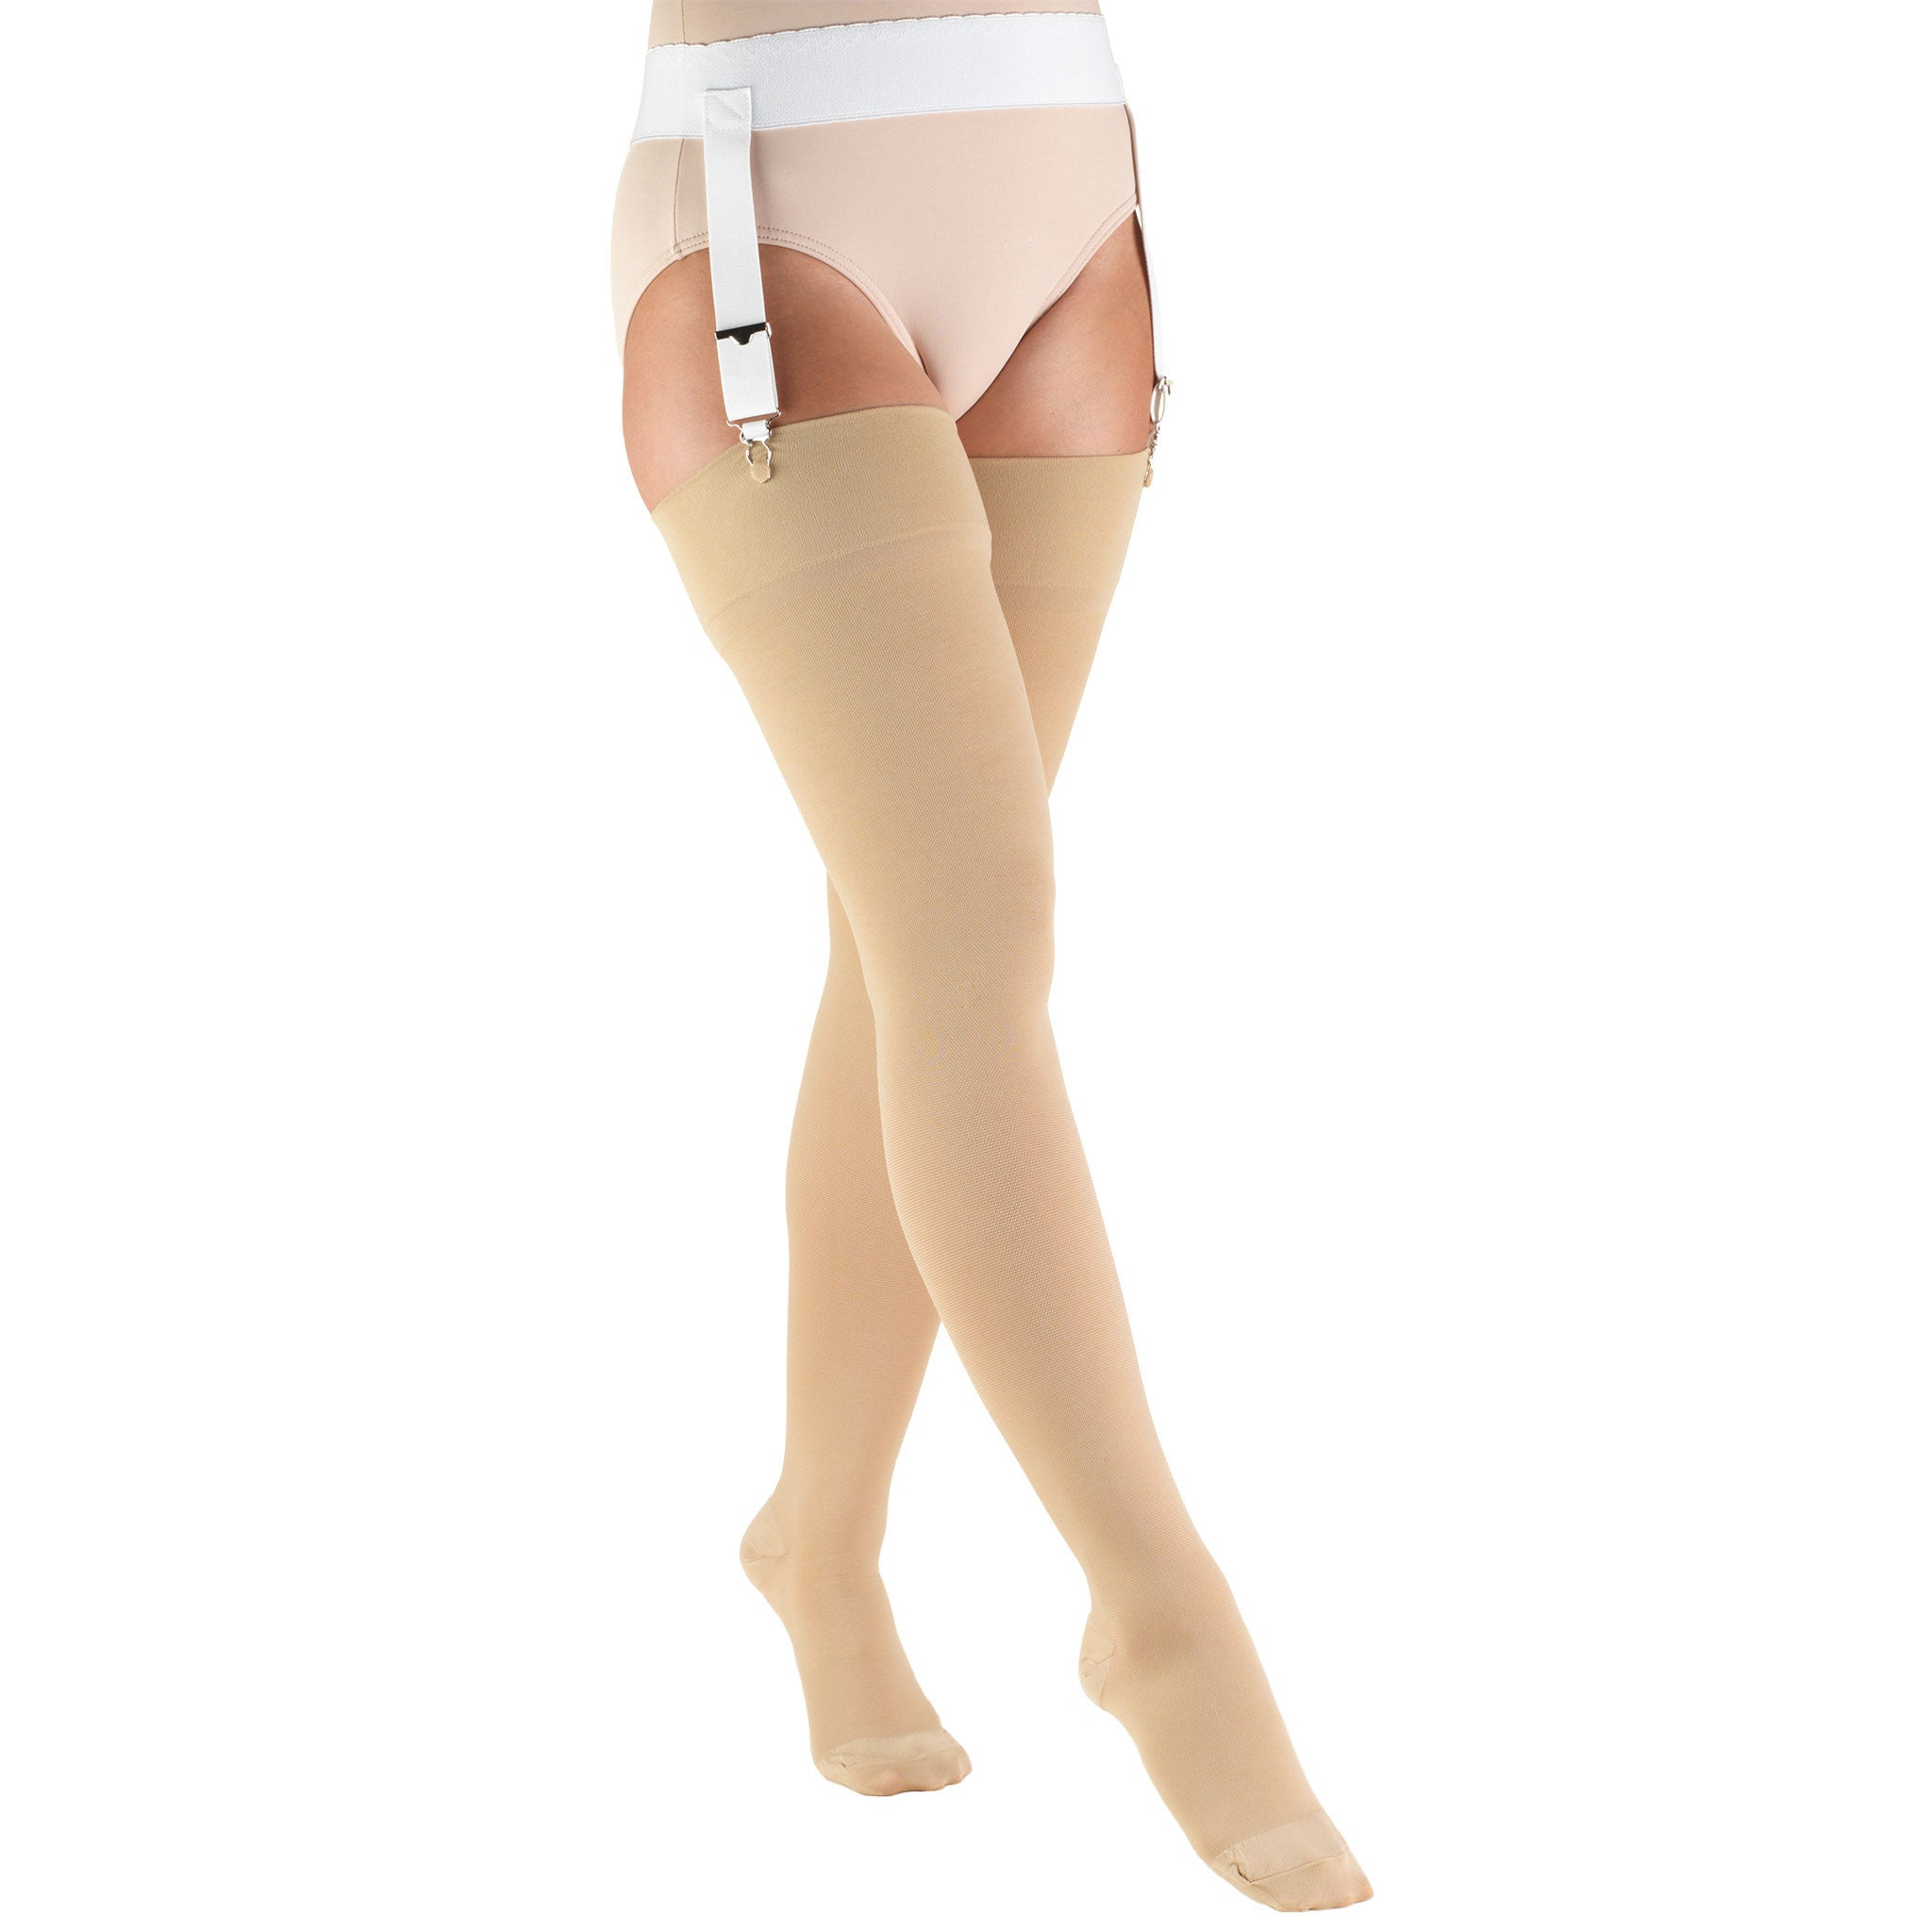 8866 THIGH HIGH CLOSED TOE BEIGE STOCKINGS